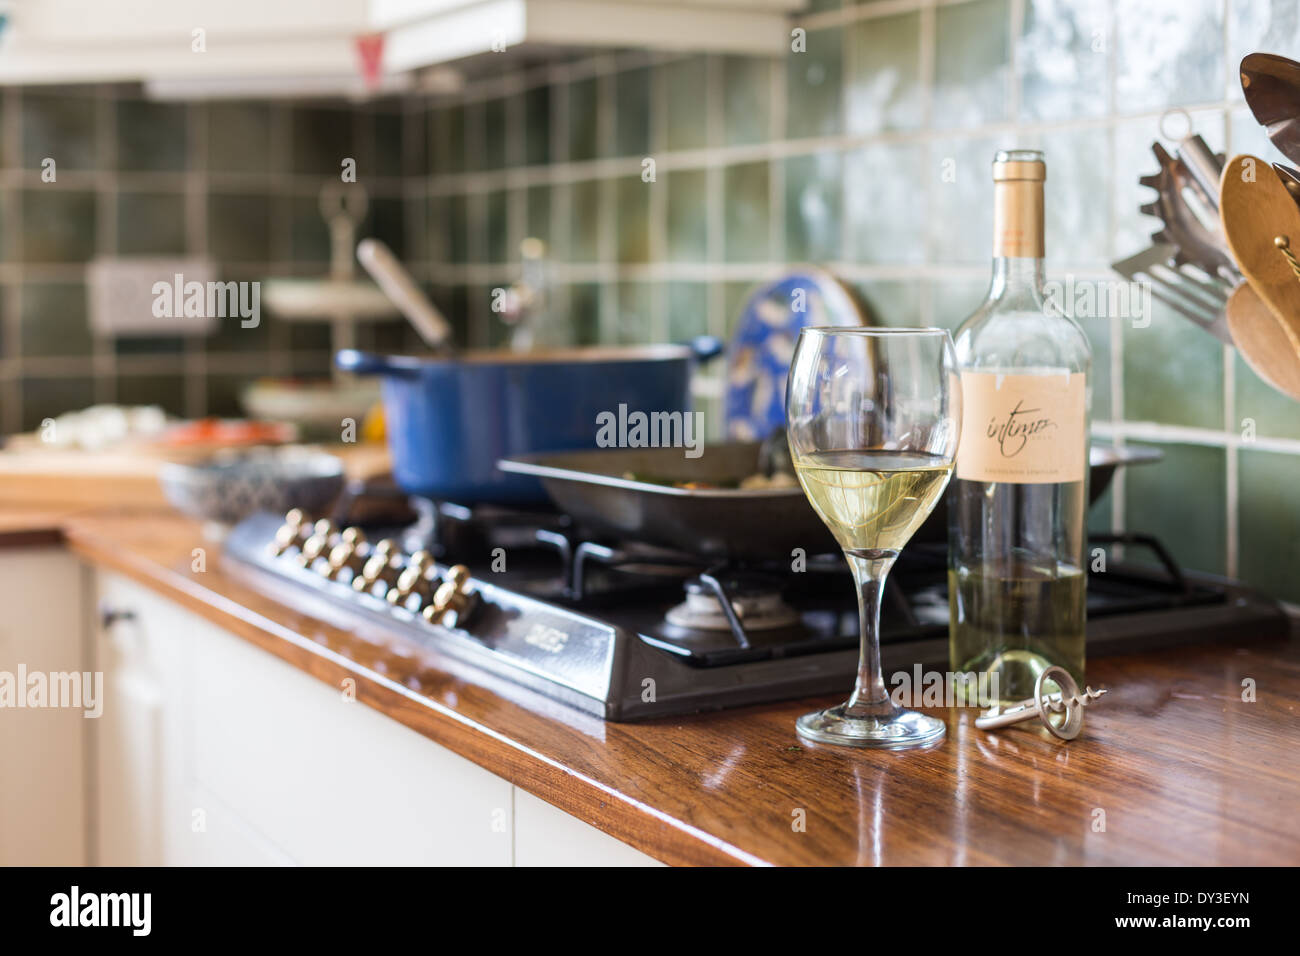 glass of wine with bottle by cooker - Stock Image